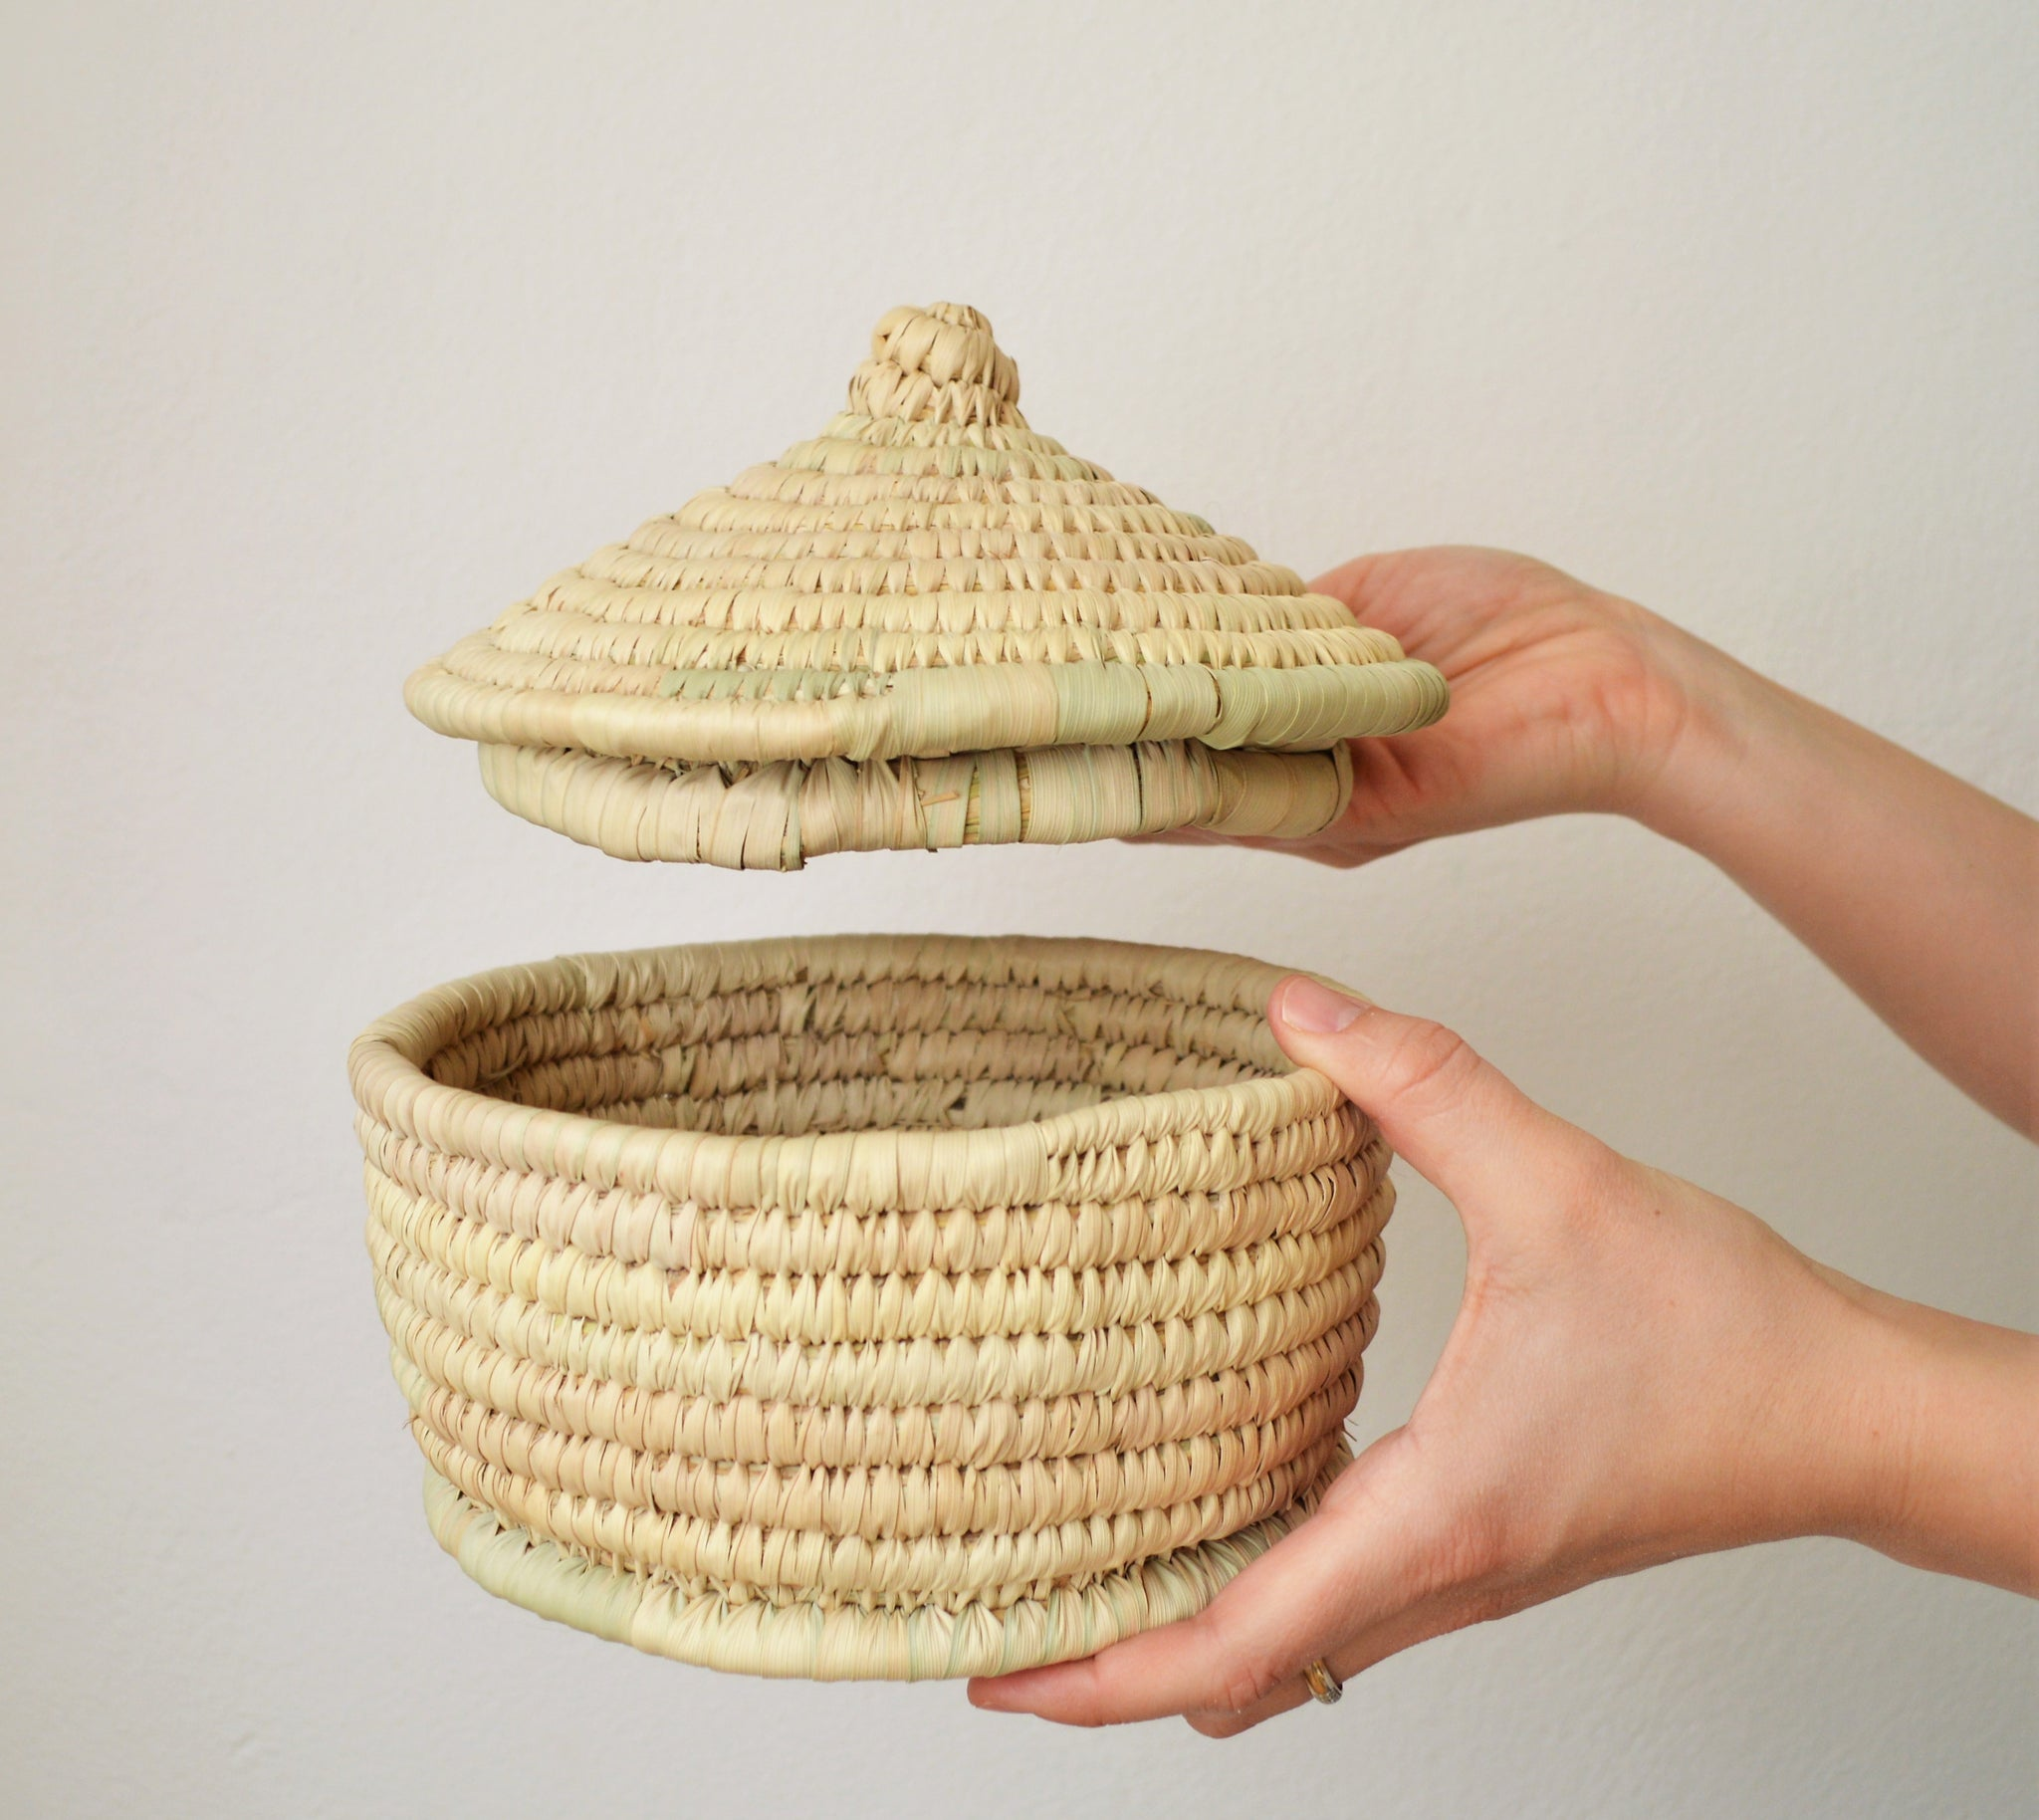 Woven straw basket with a lid, Egyptian palm basket